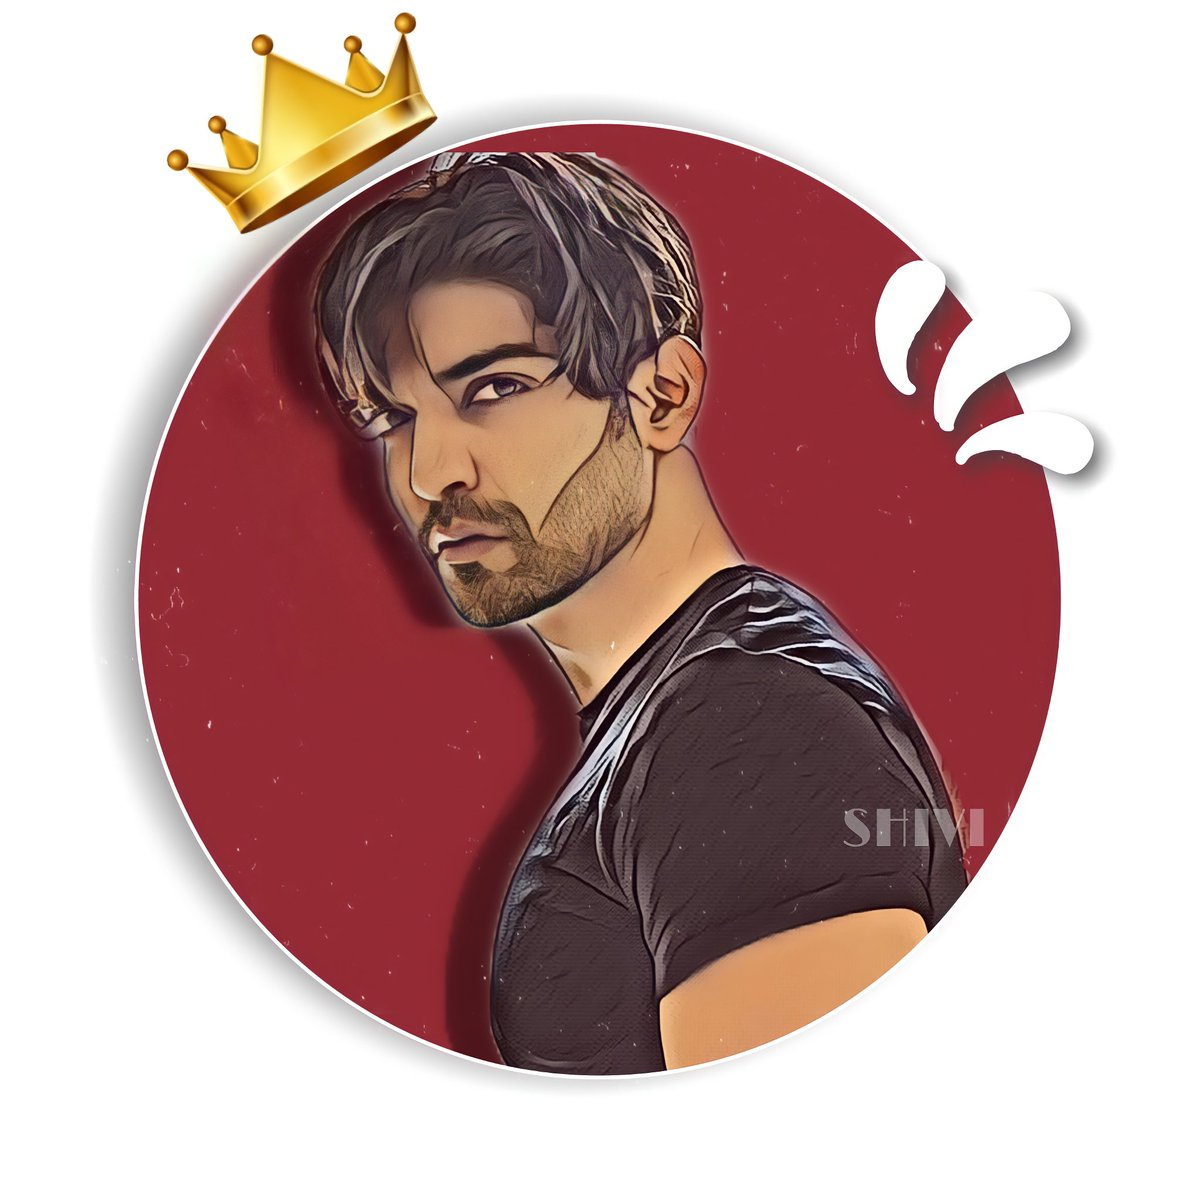 👑King of hearts 👑 @gurruchoudhary #GurmeetChoudhary 💘😘 #favouriteactor #gutuchoudhary #actor #Bollywood #crush #love #RisingStar #Thewife #starboy #fanlove https://t.co/QsSscvtk0S